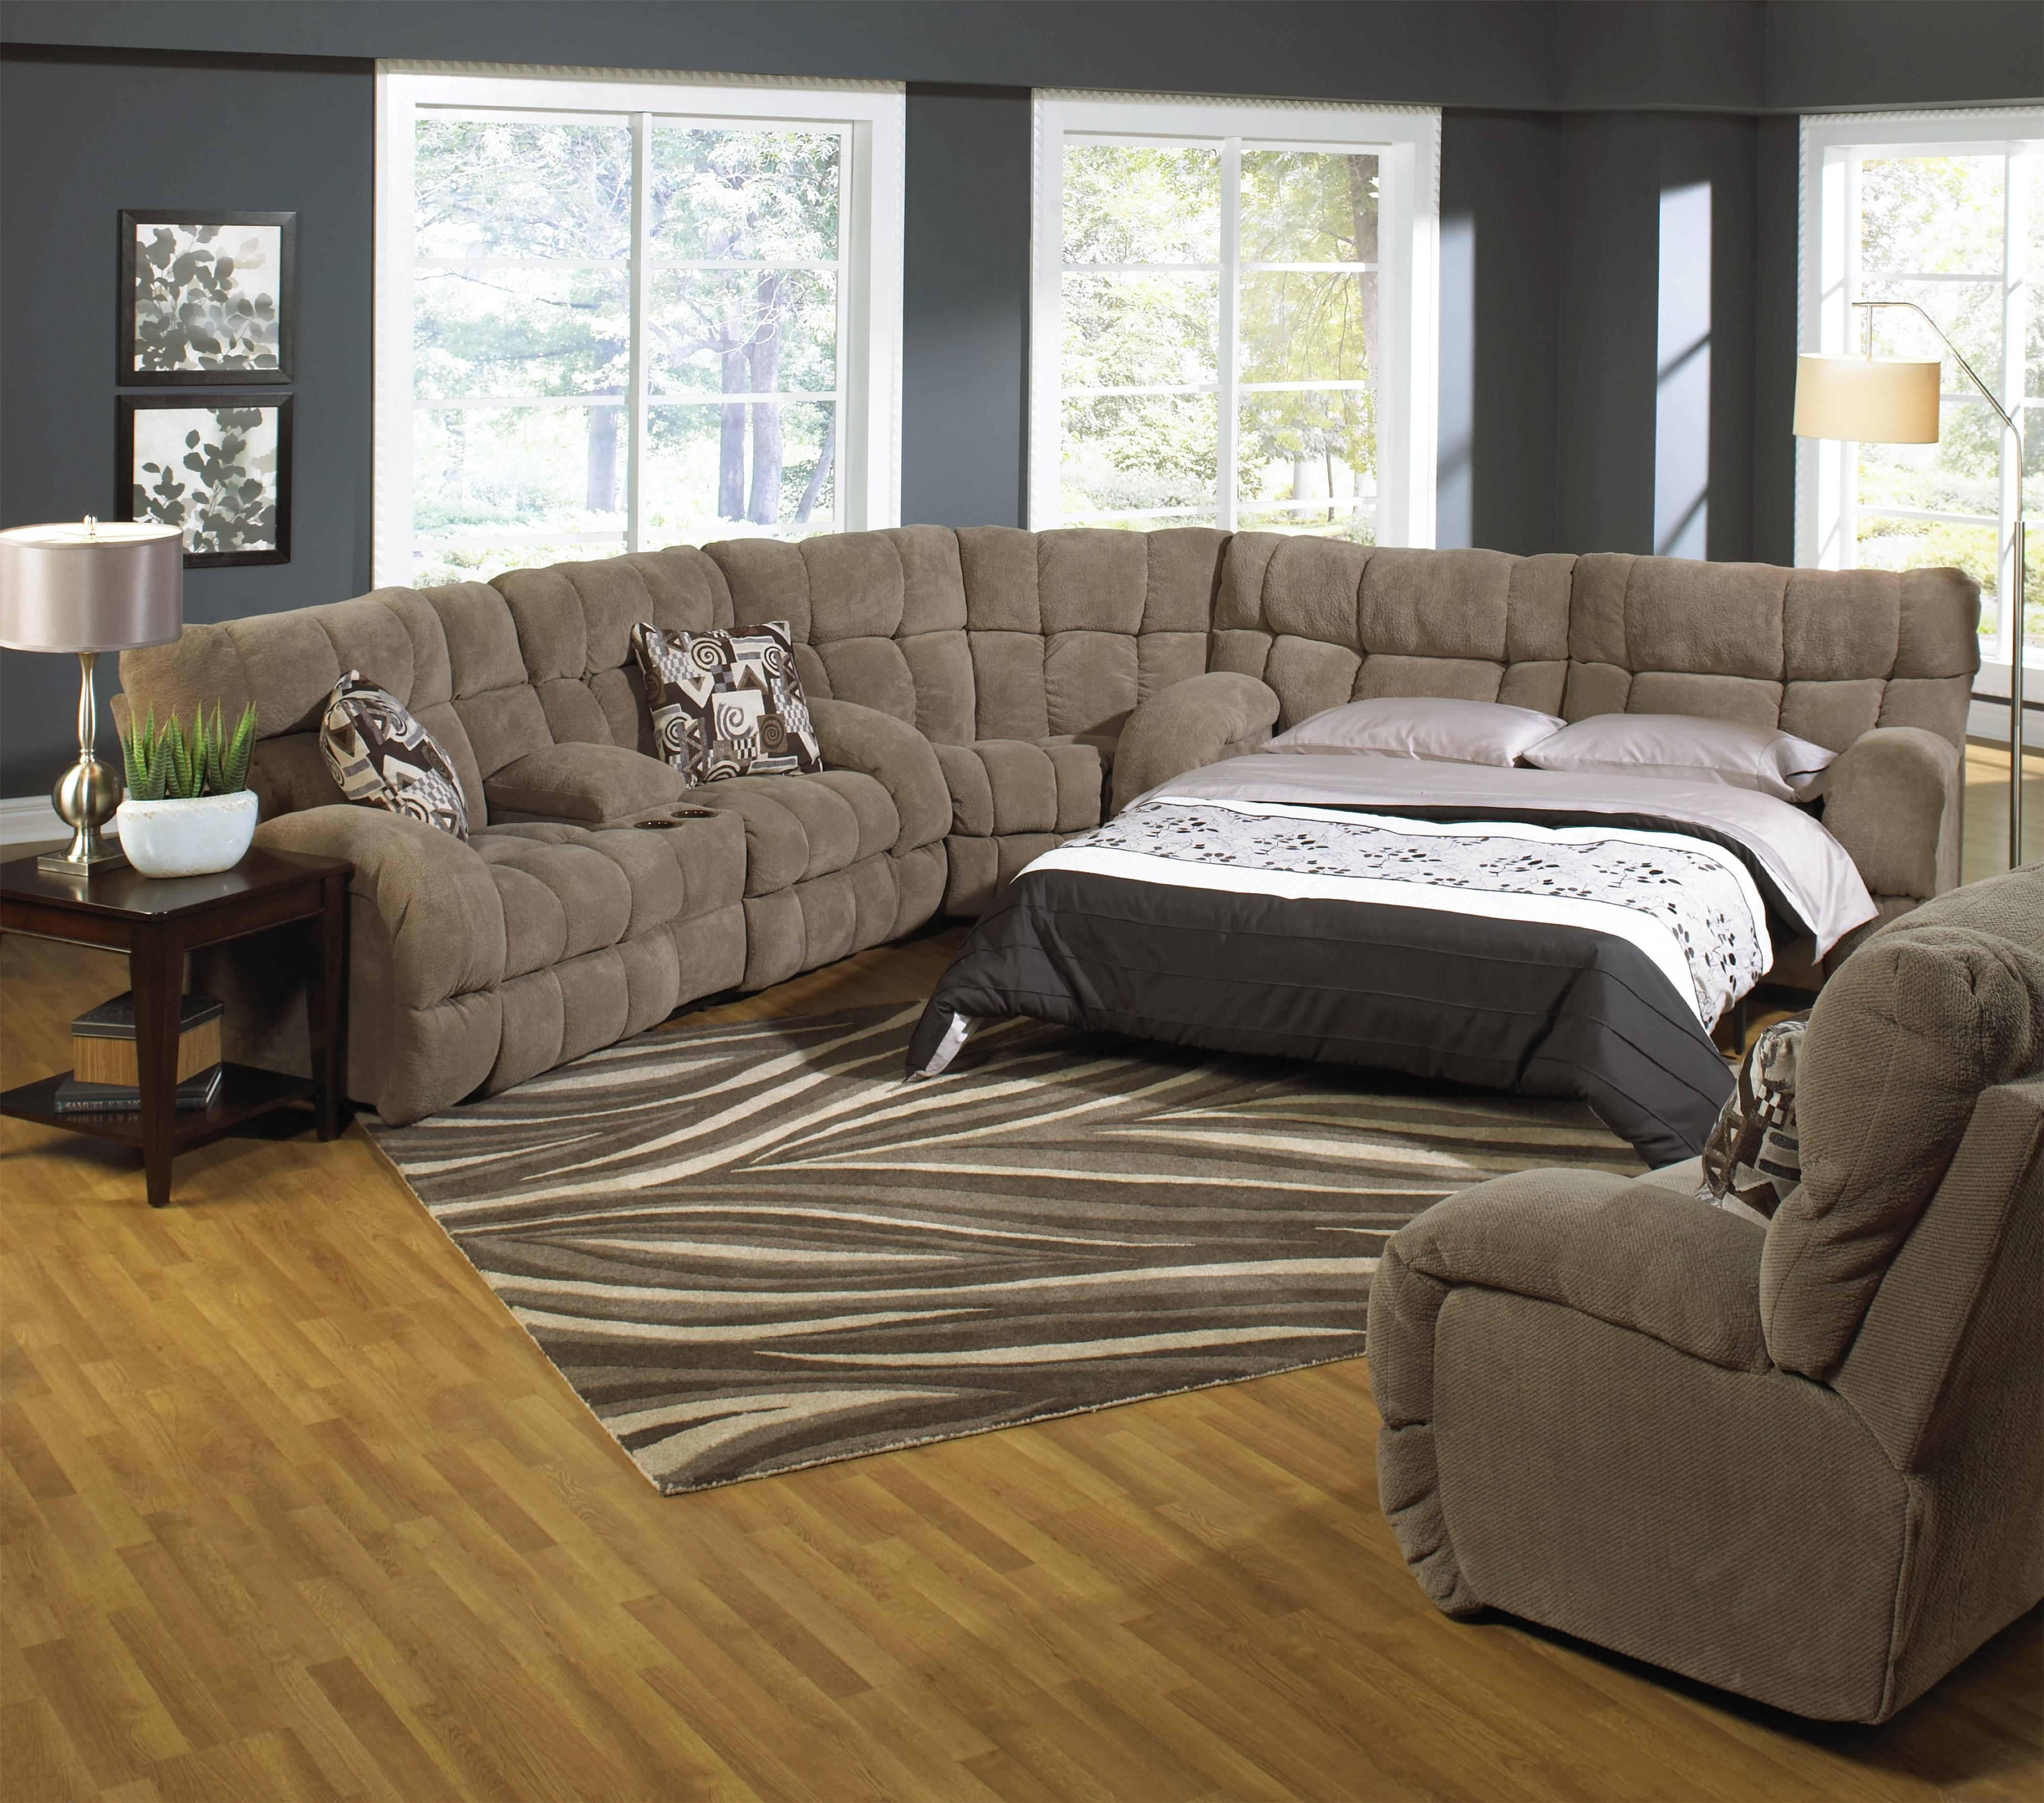 Sofa : Stunning Sectional Sofa Queen Bed Singletary Sleeper Regarding Sectional Sofas With Queen Size Sleeper (Image 8 of 10)